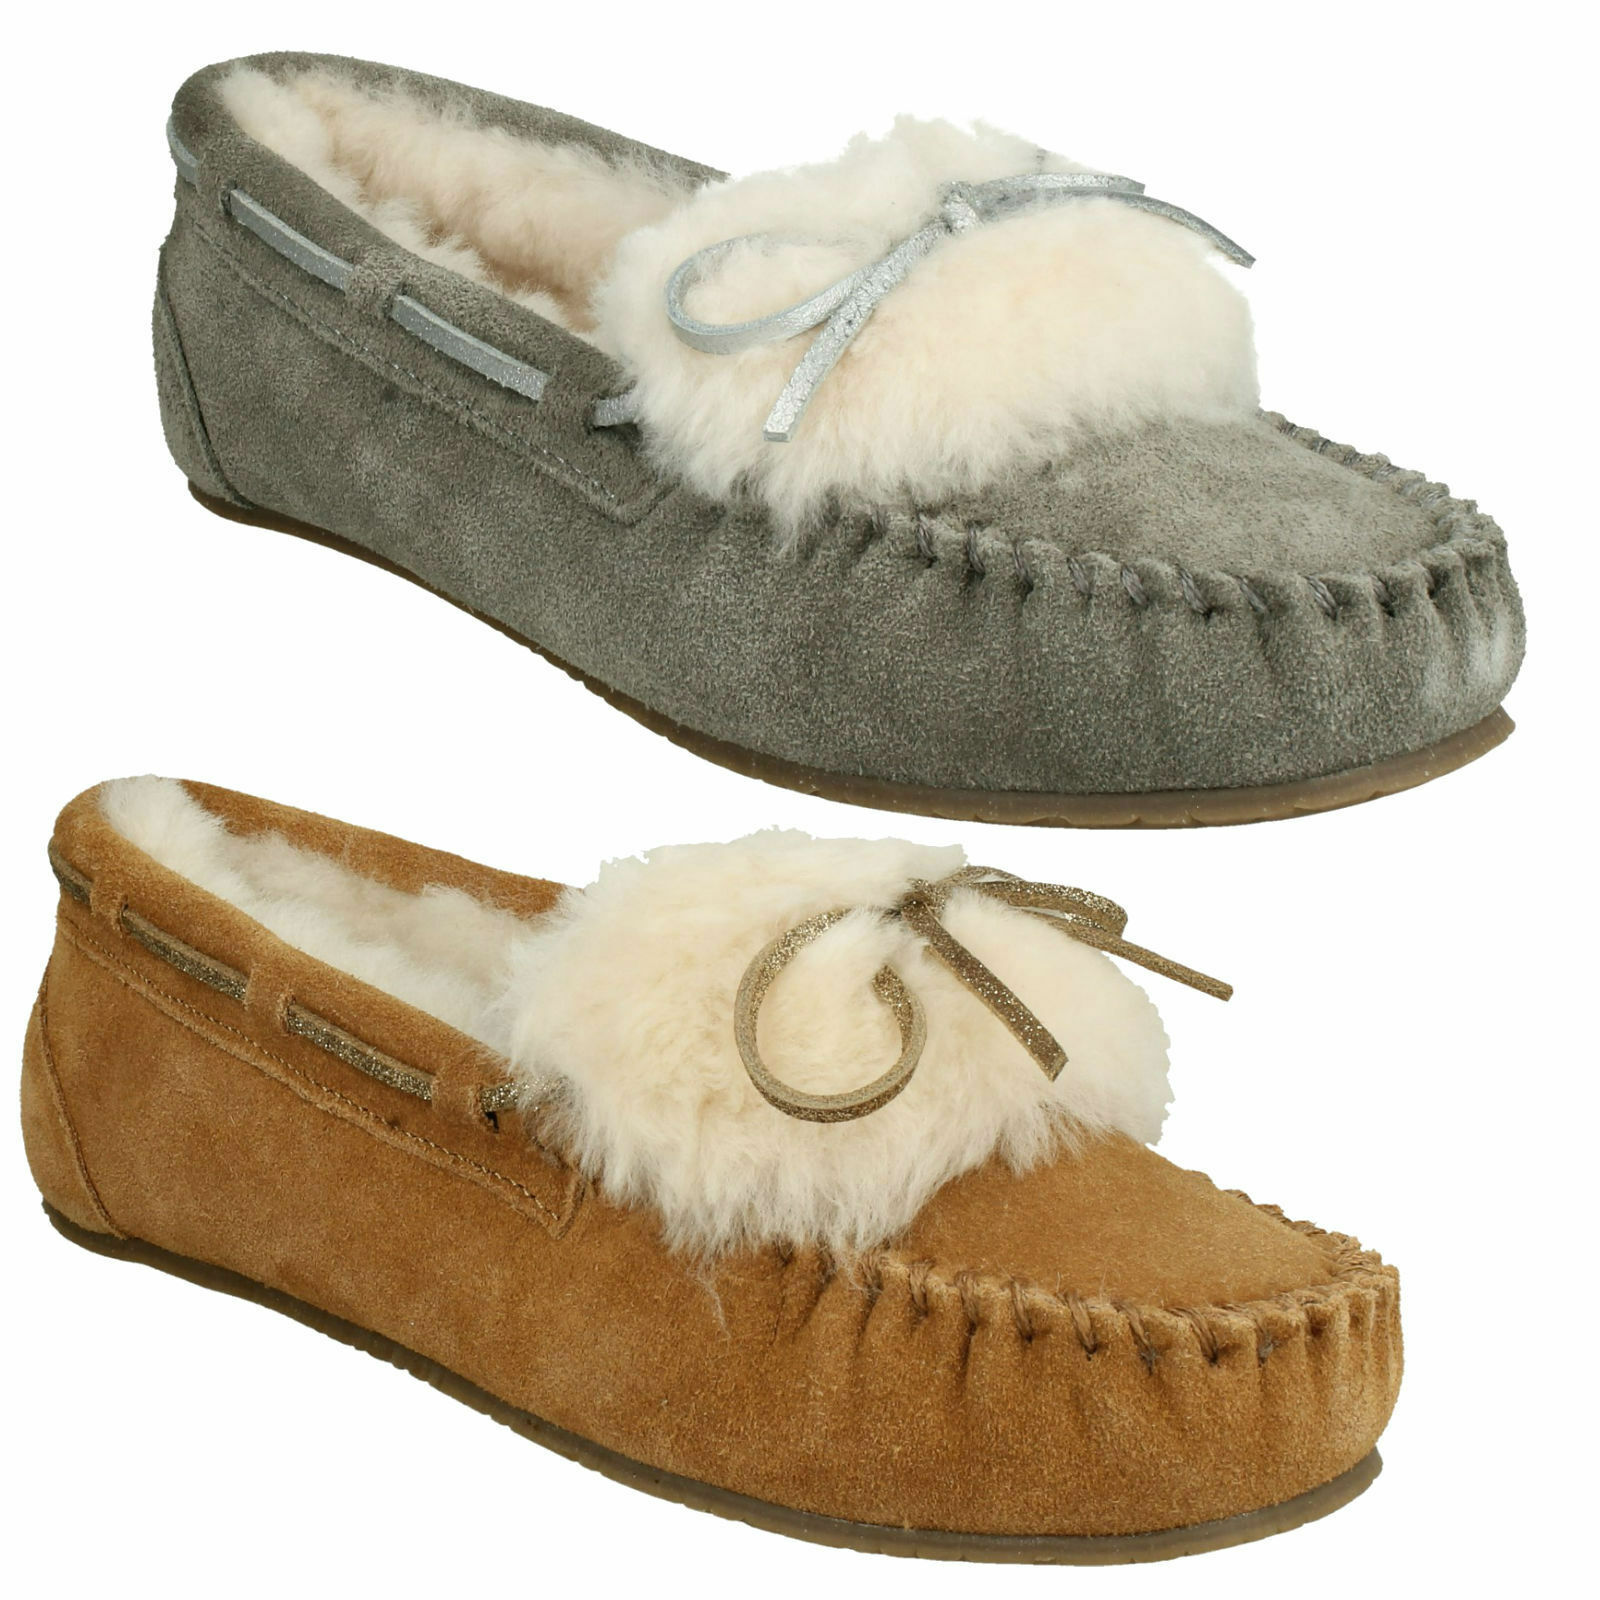 WARM GLAMOUR LADIES CLARKS SUEDE LEATHER FUR LINED INDOOR MOCCASIN BOAT SLIPPERS